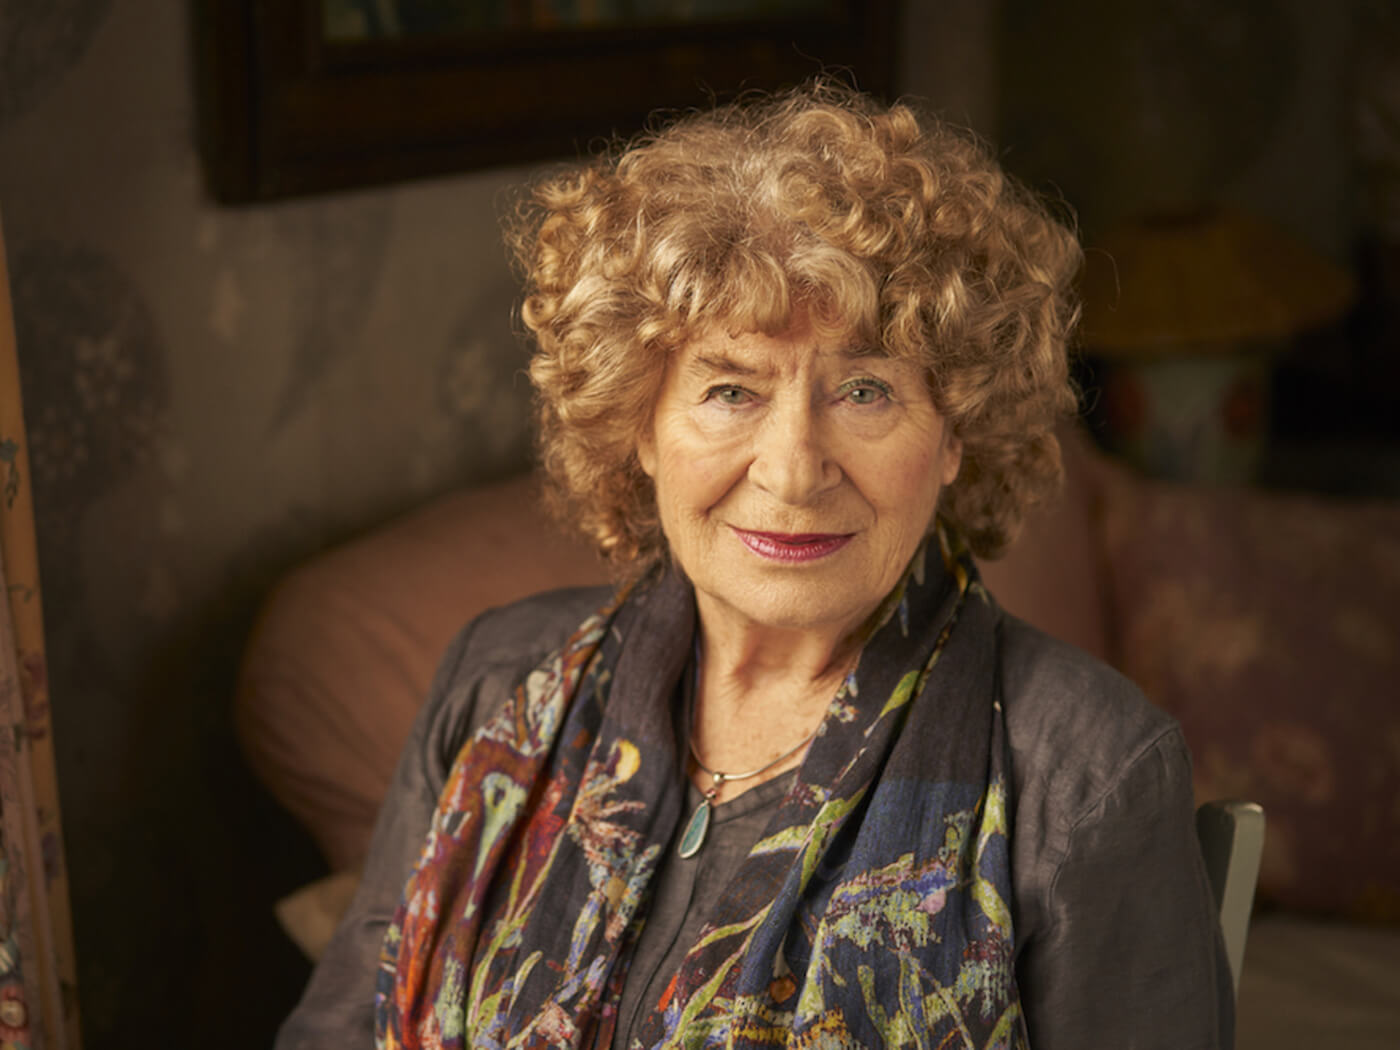 Shirley Collins announces new album, Heart's Ease